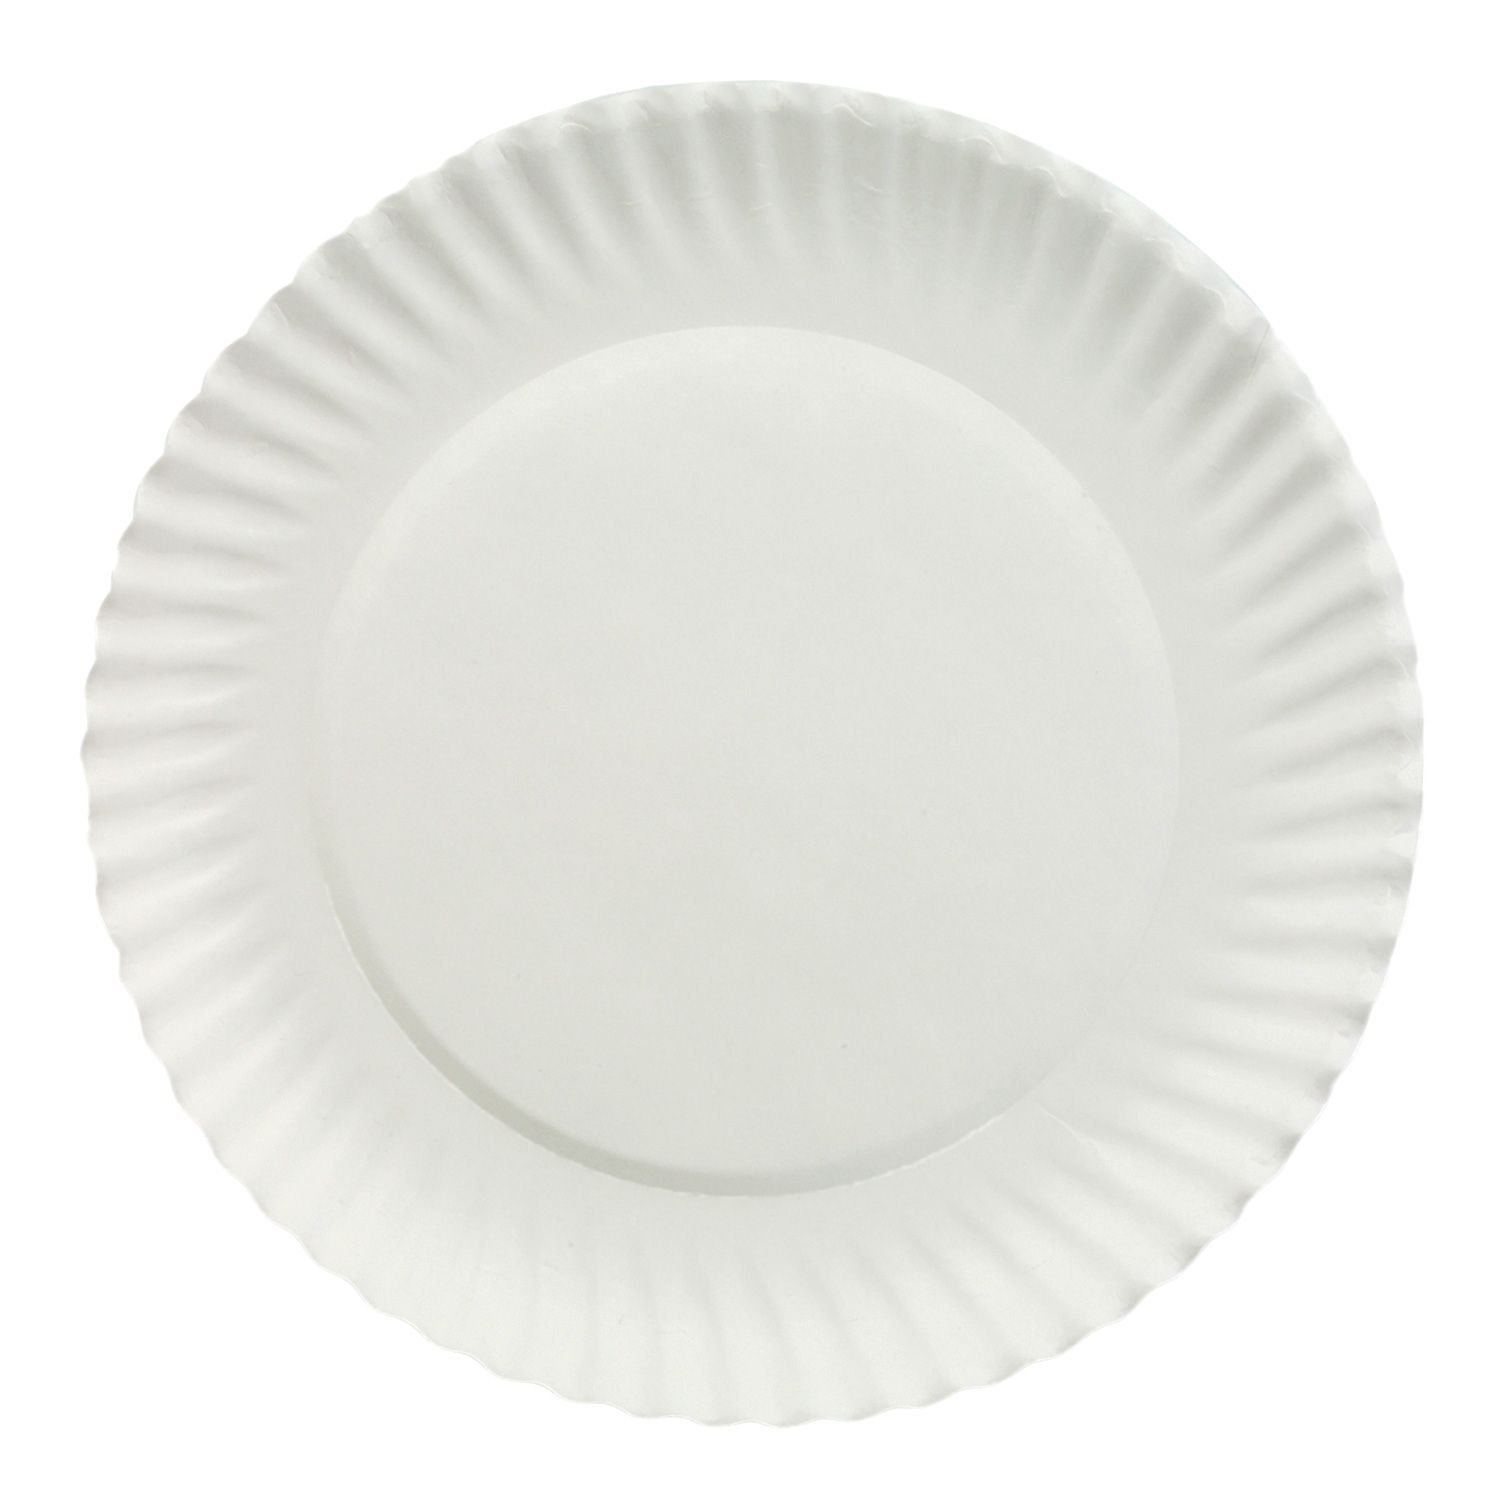 Amazon.com Dixie White 9  Economical Paper Plates (150 Plates) (150 9  Plates) Kitchen u0026 Dining  sc 1 st  Amazon.com & Amazon.com: Dixie White 9